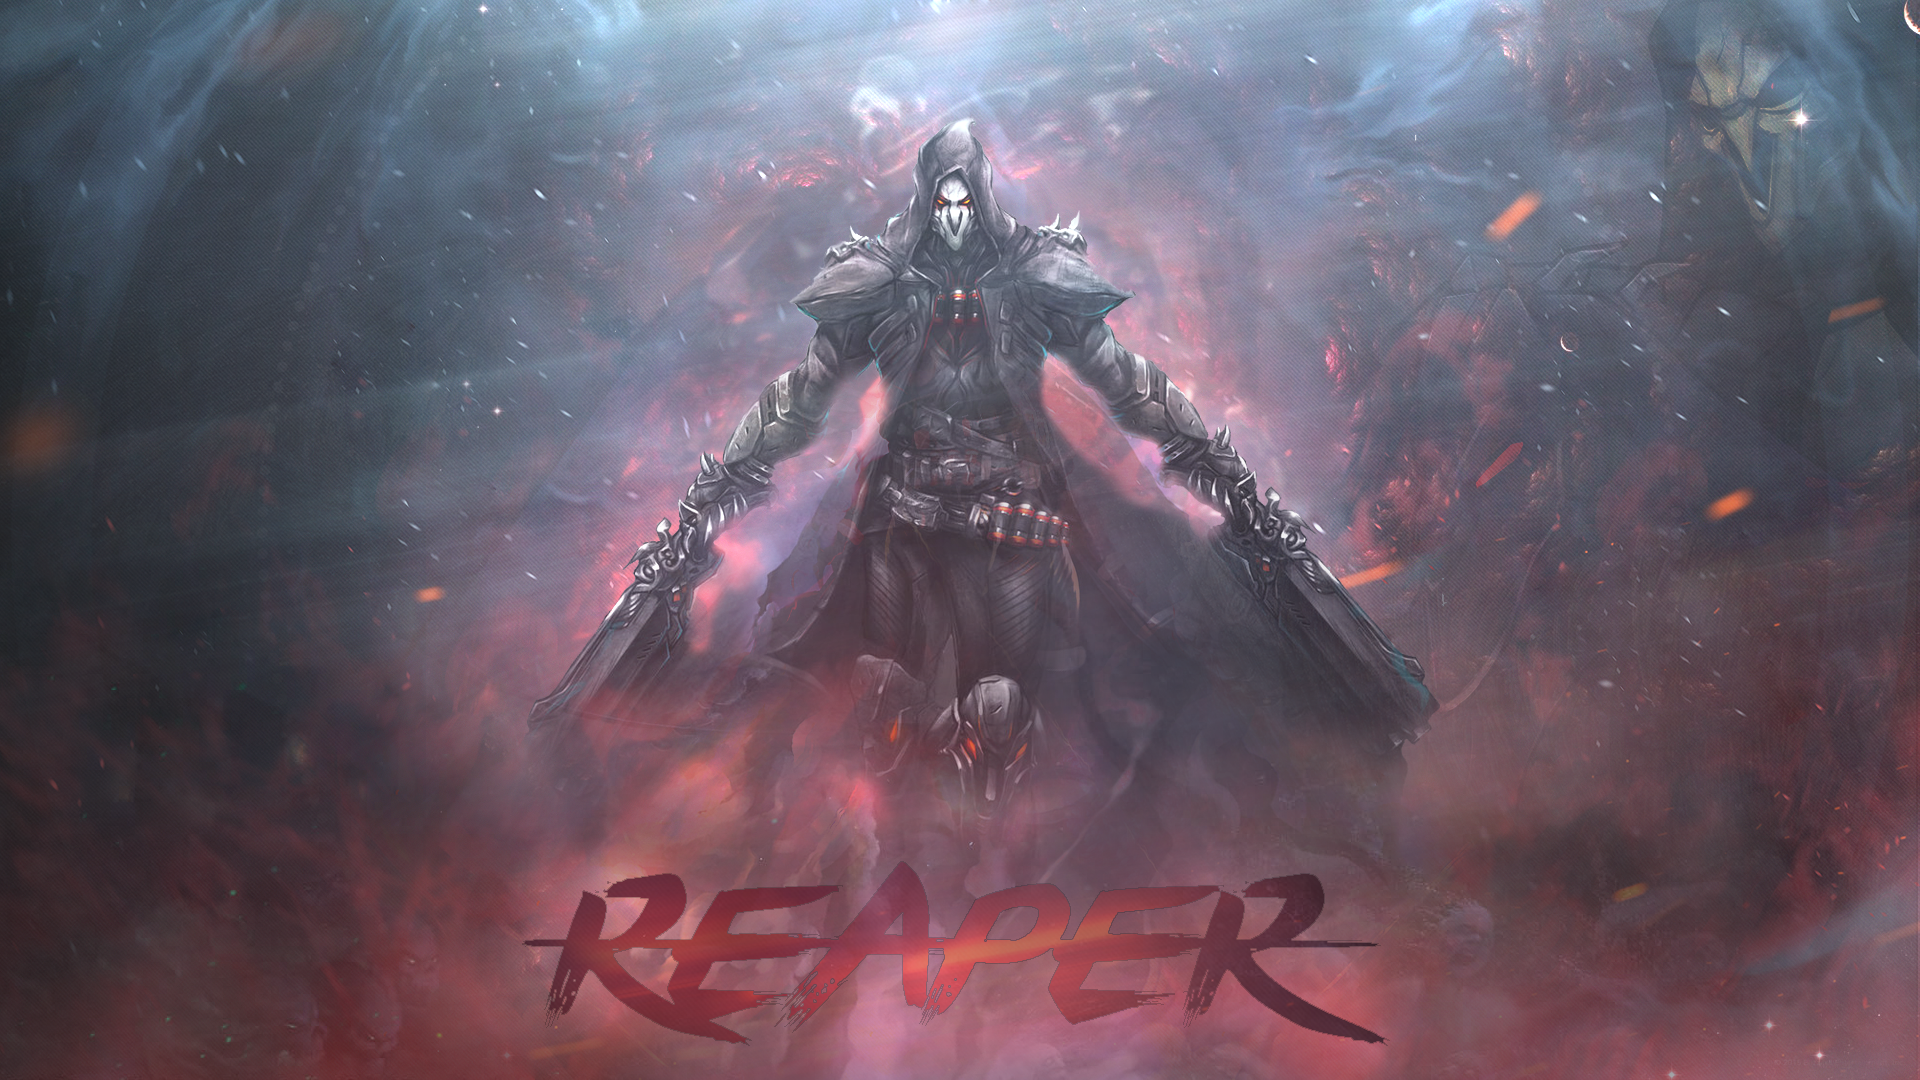 reaper overwatch hd games 4k wallpapers images